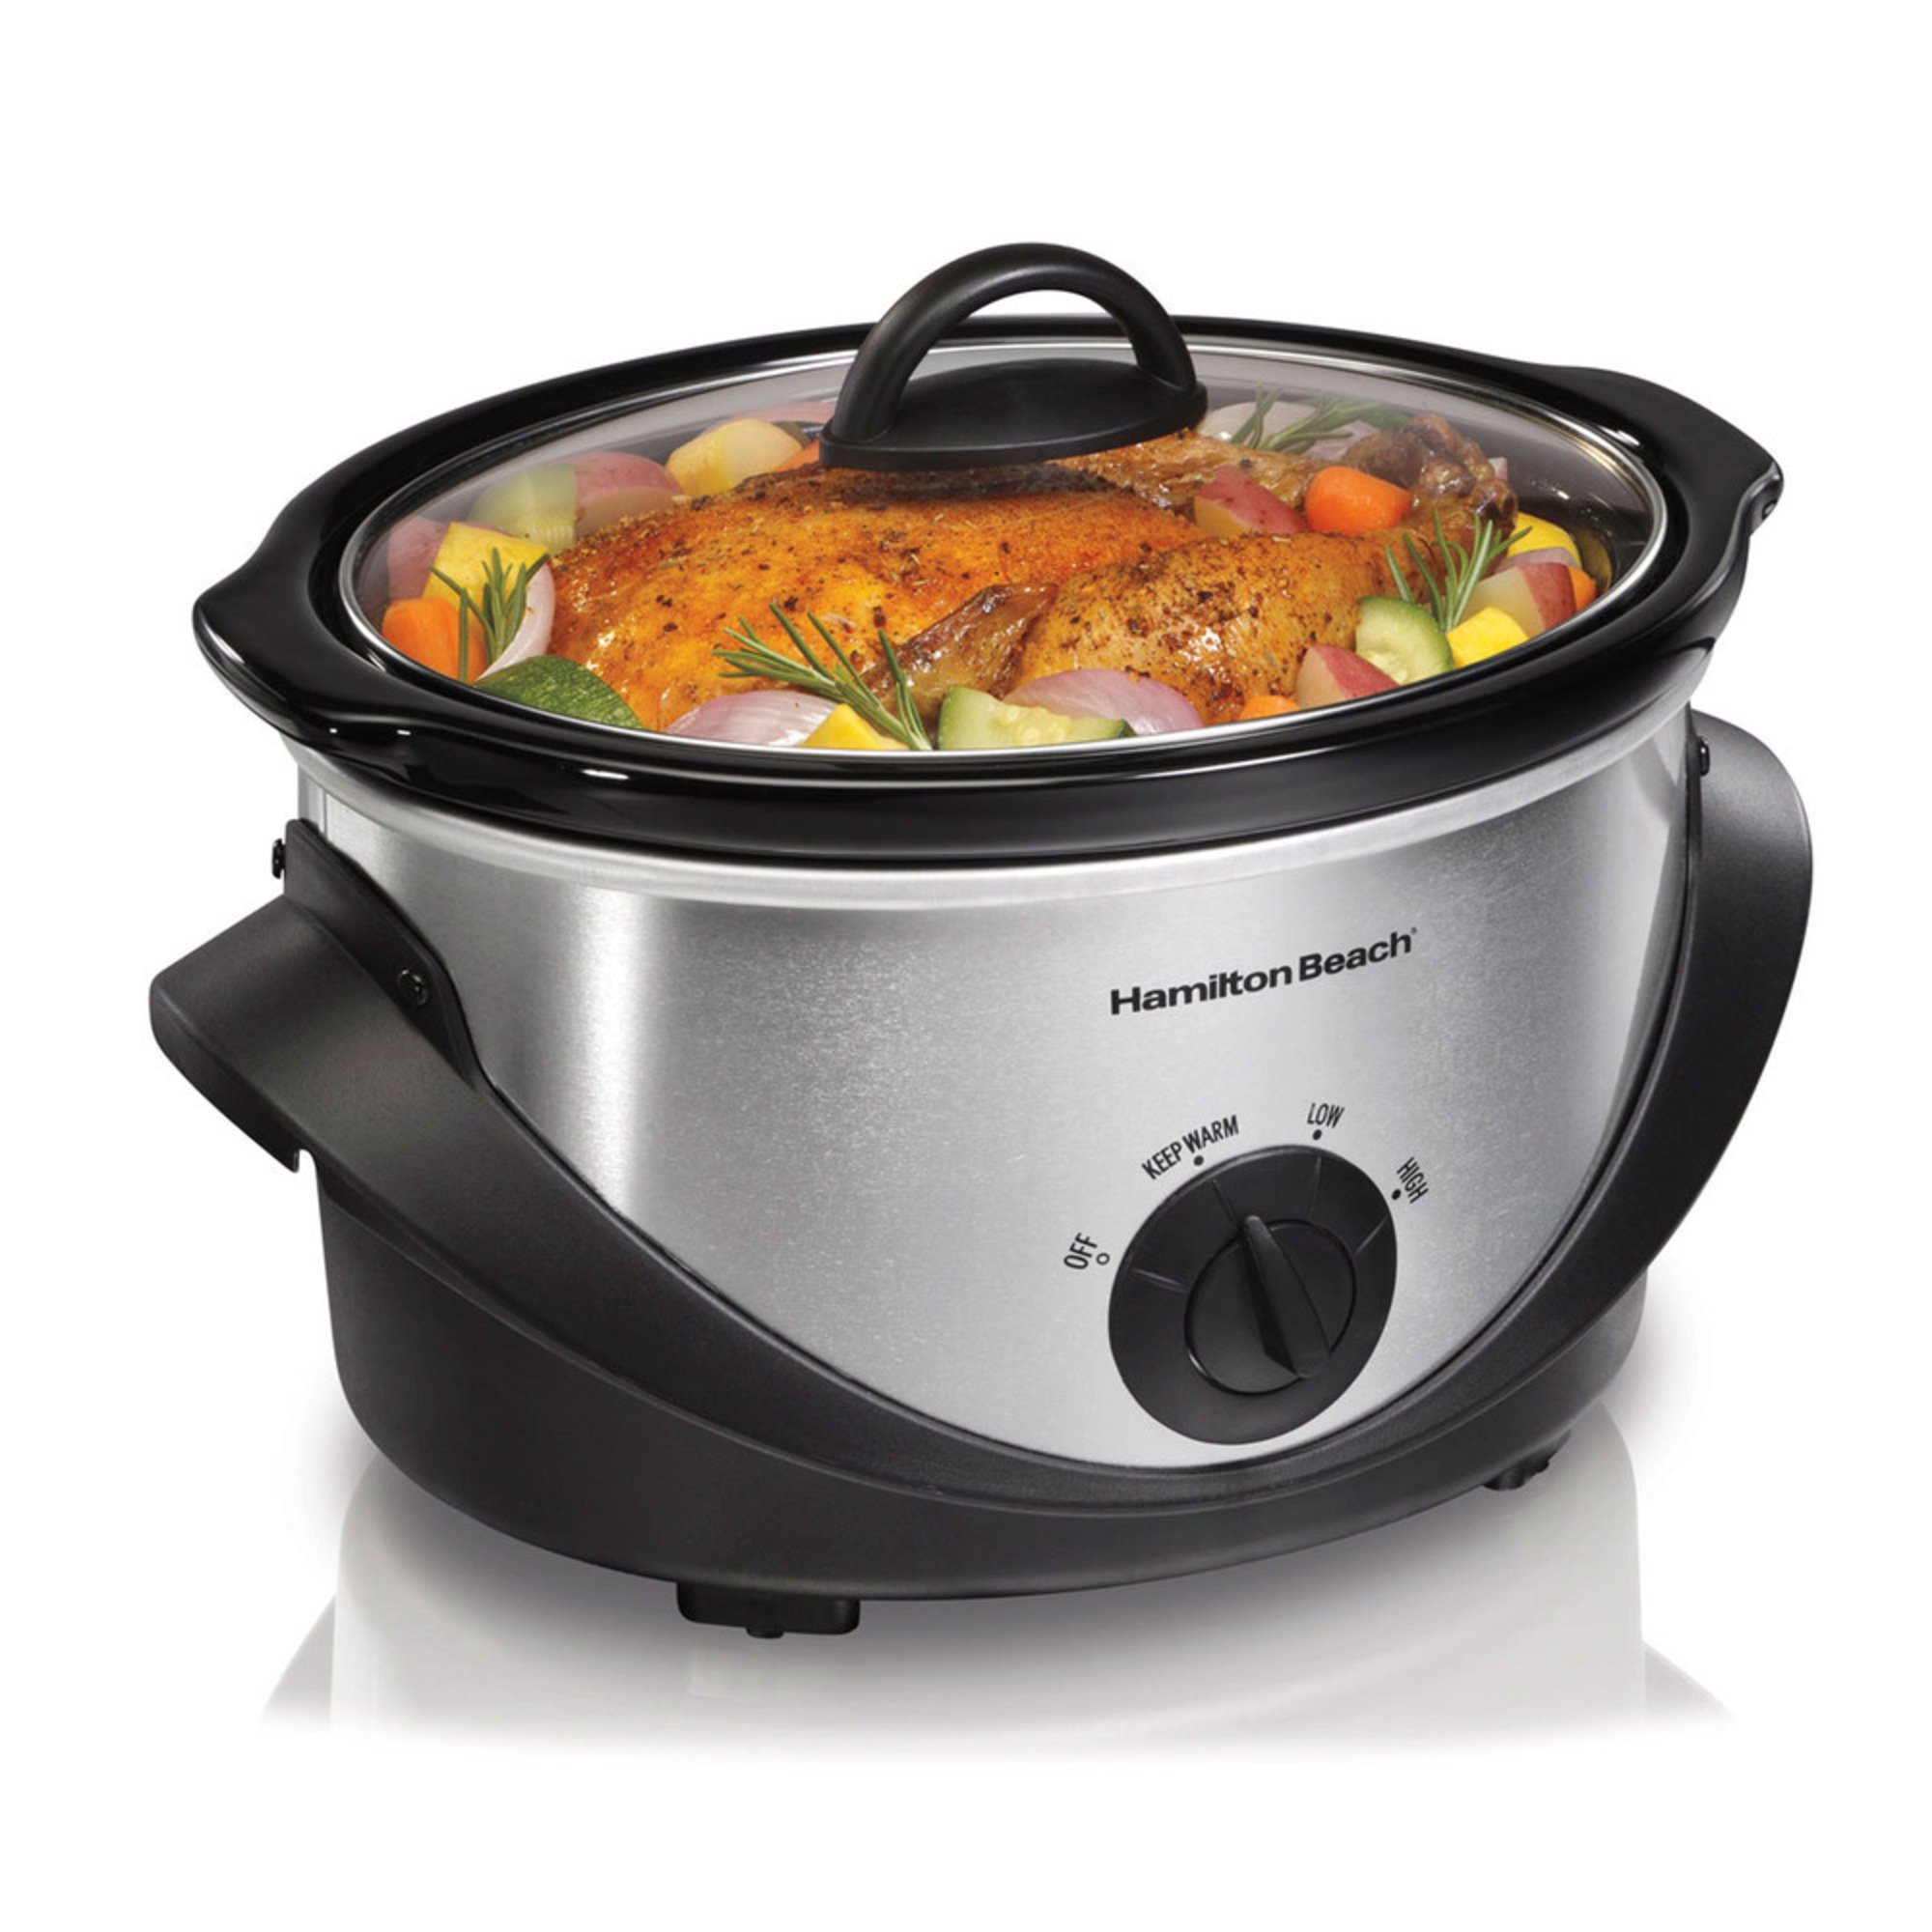 Hamilton beach slow cooker 33141 slow cookers for Hamilton beach pioneer woman slow cooker